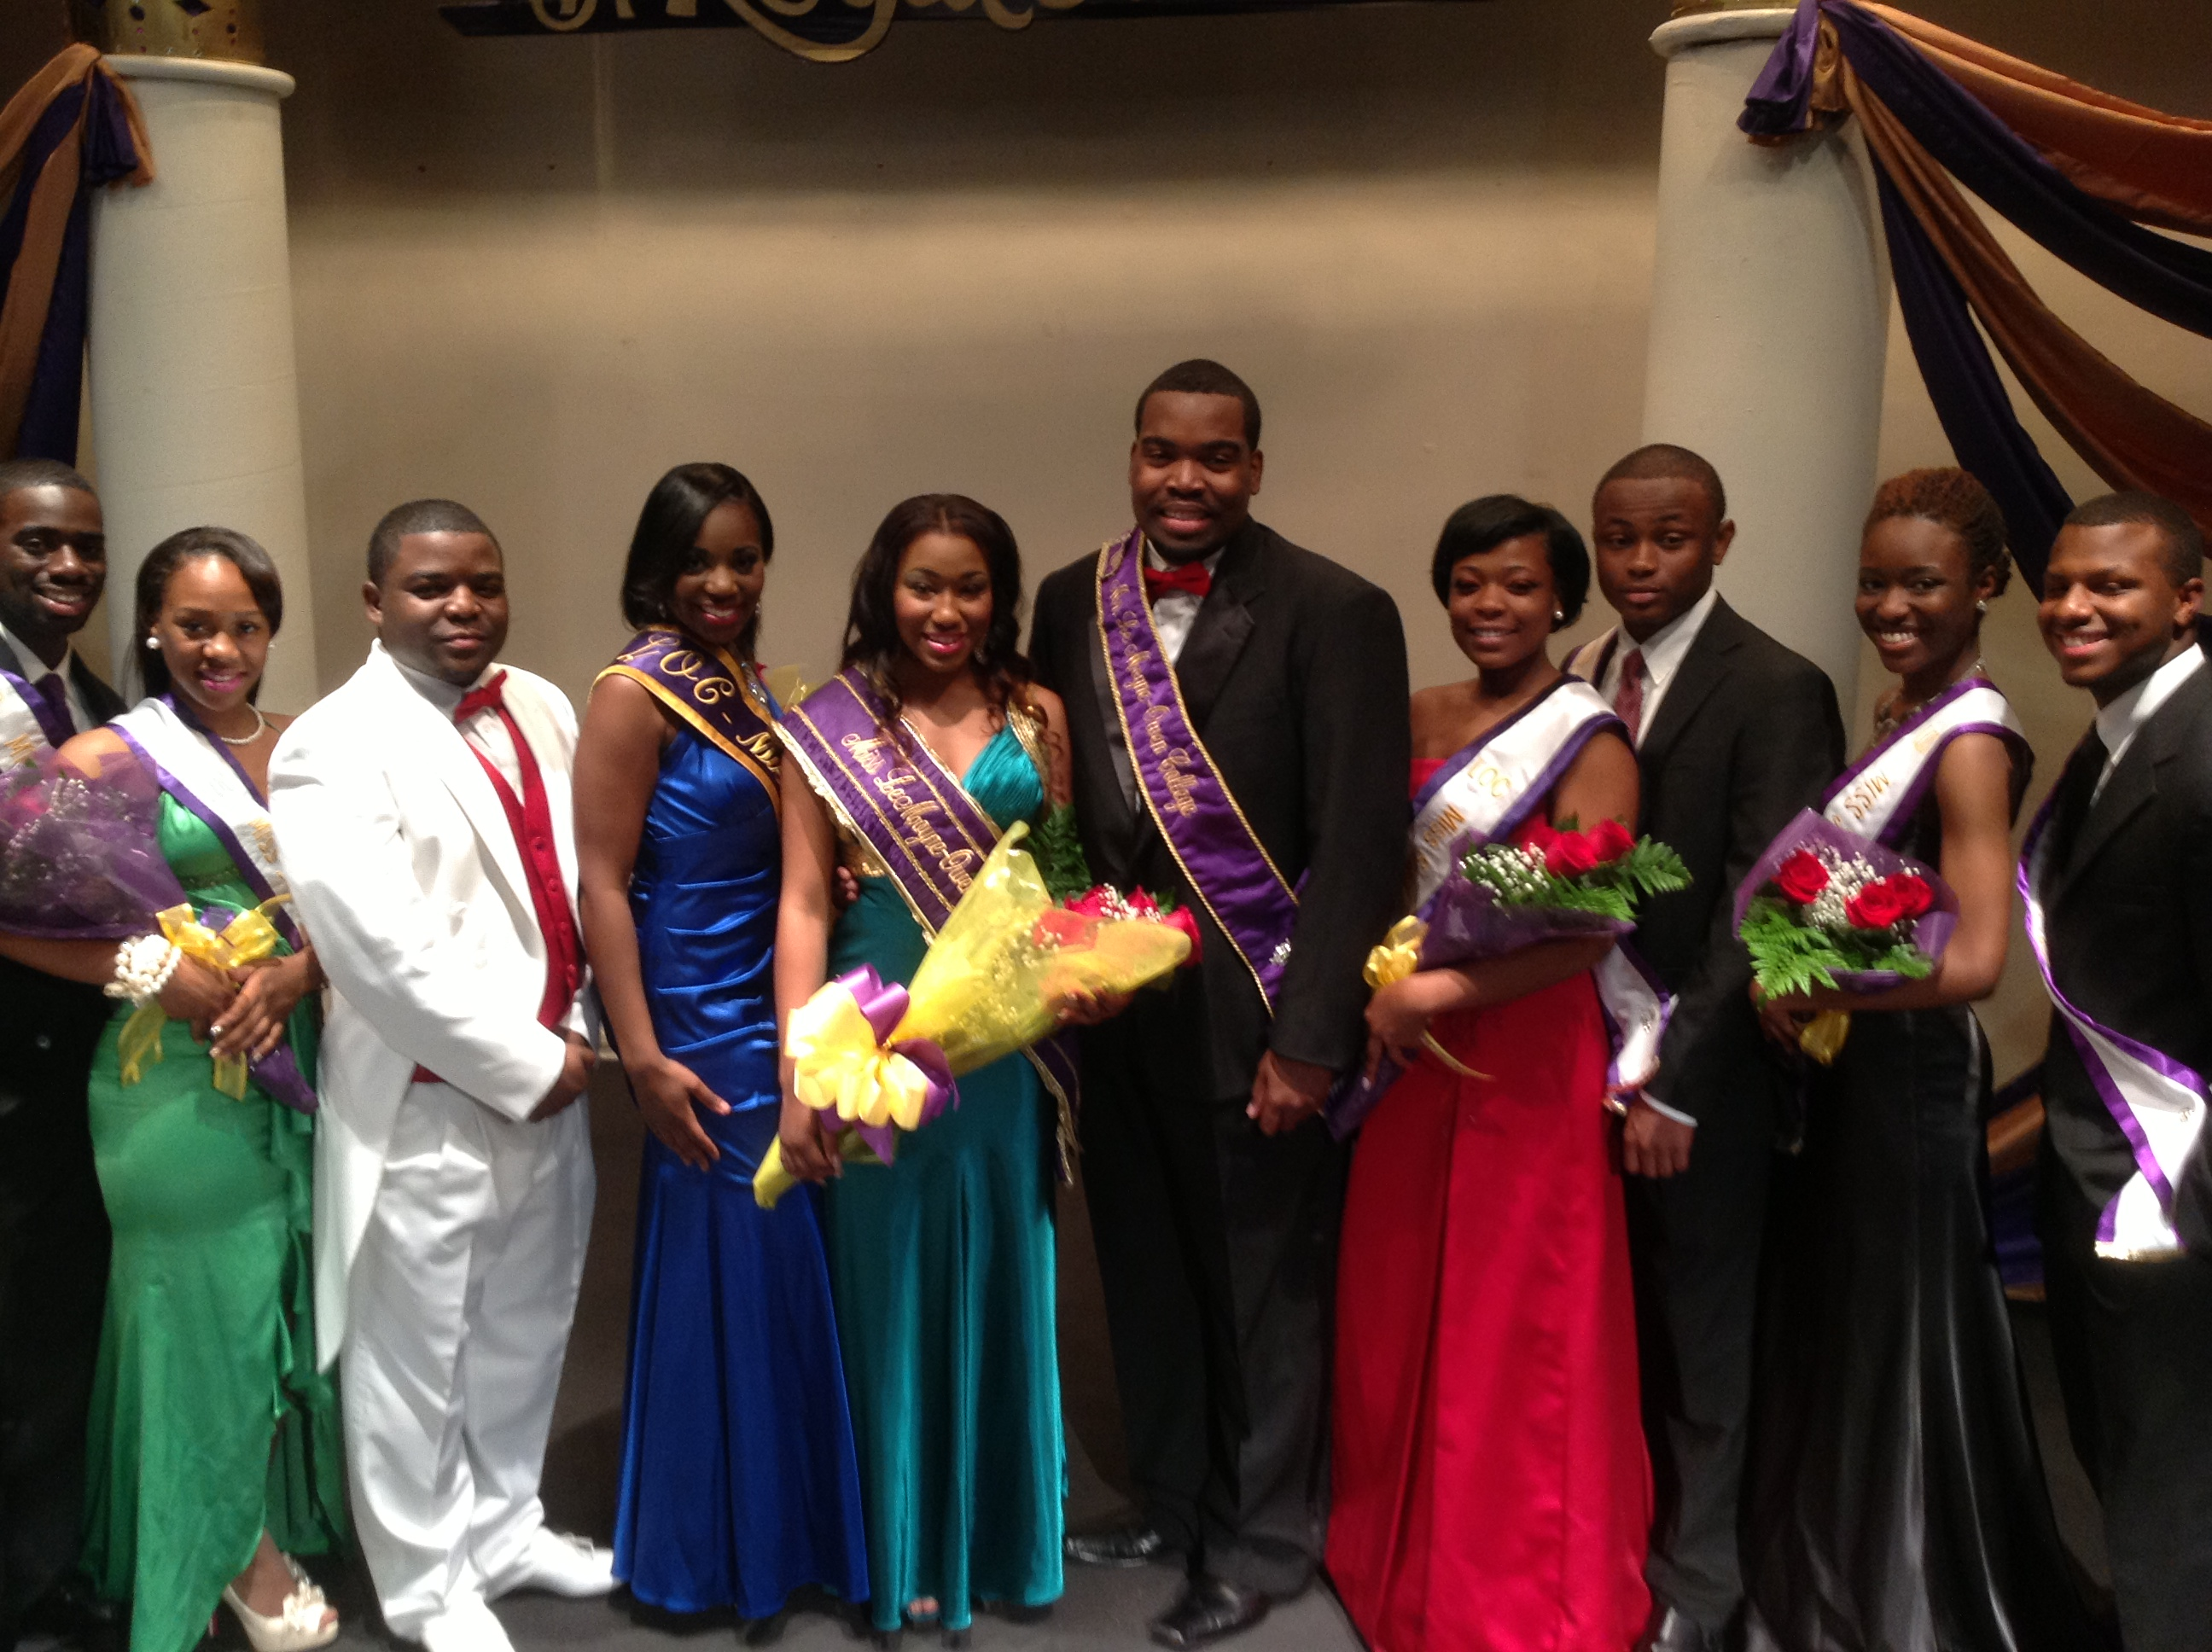 2013-14 Royalty/Leaders Elected